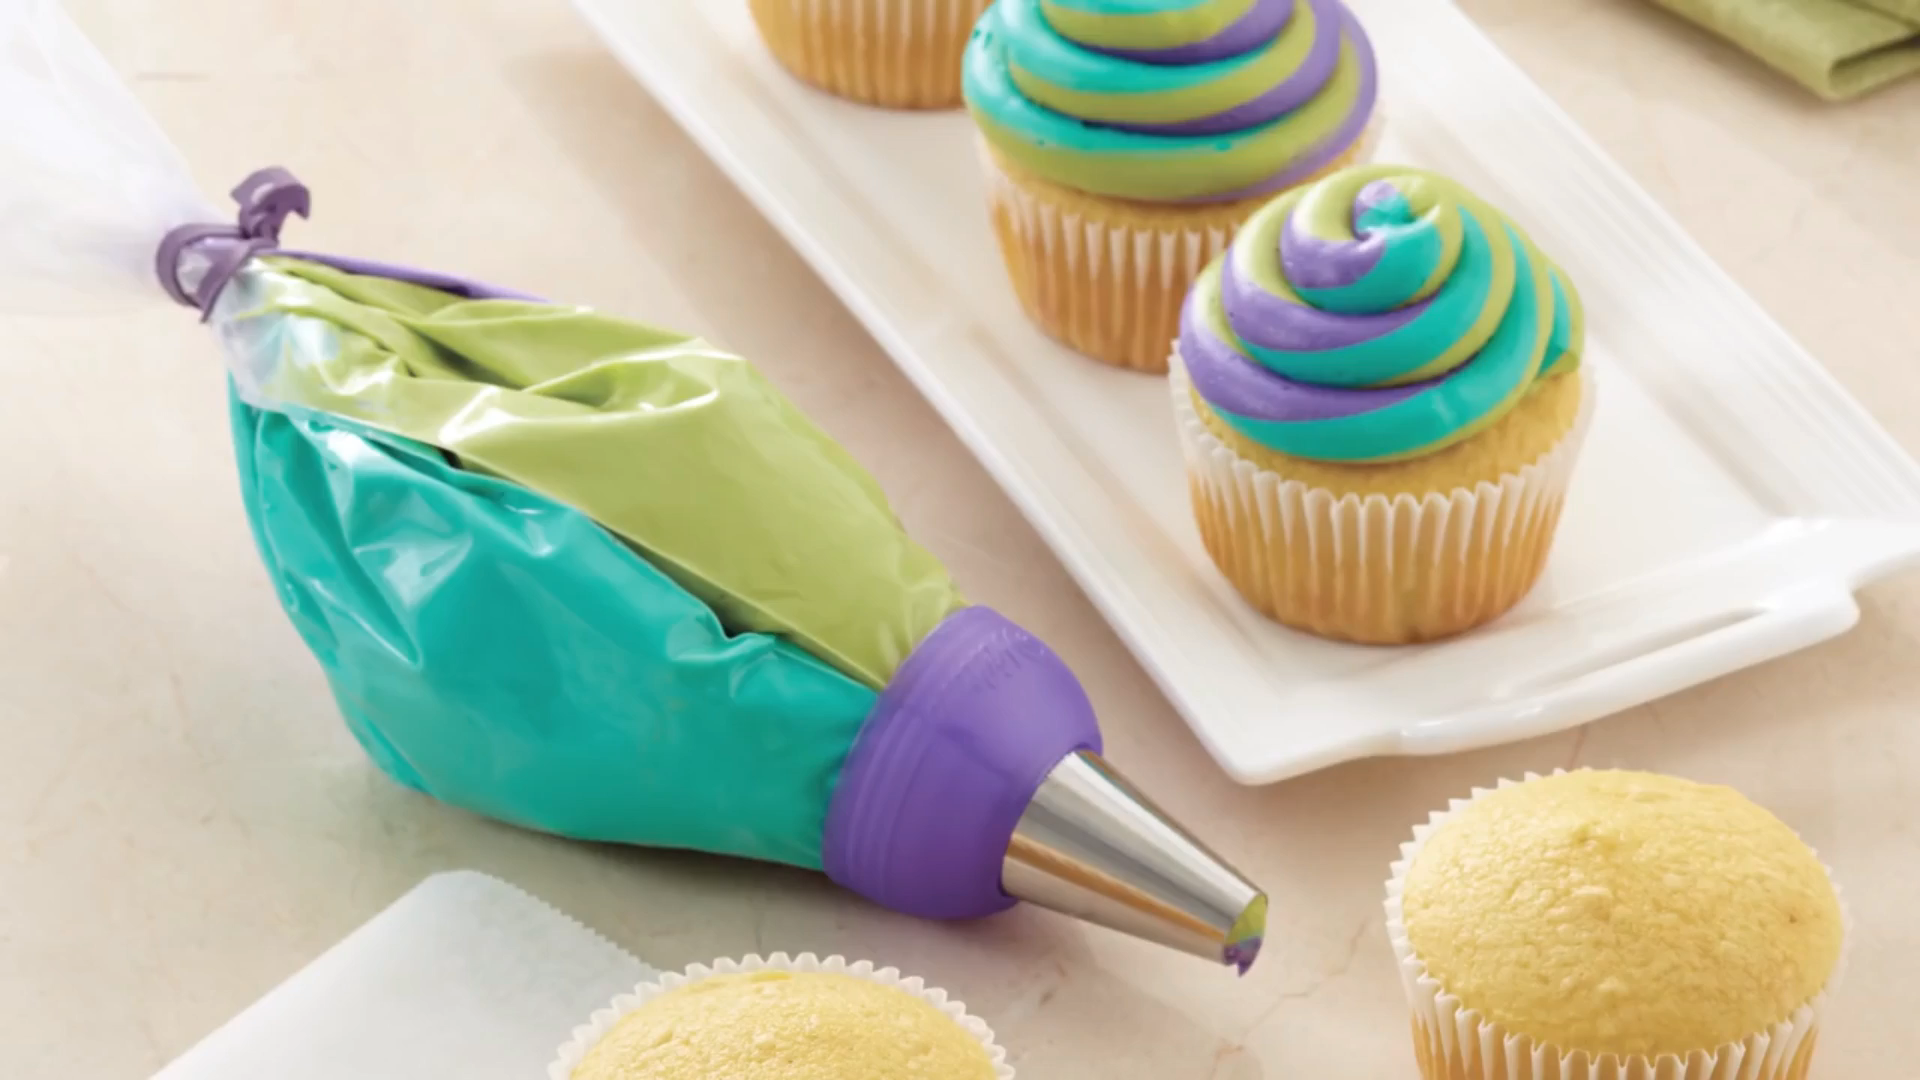 Tri-Color Icing Bag Coupler Nozzle Converter For only $11.99 this amazing device lets you easily level up your icing skills! Why wait? Get yours today!   nozzle